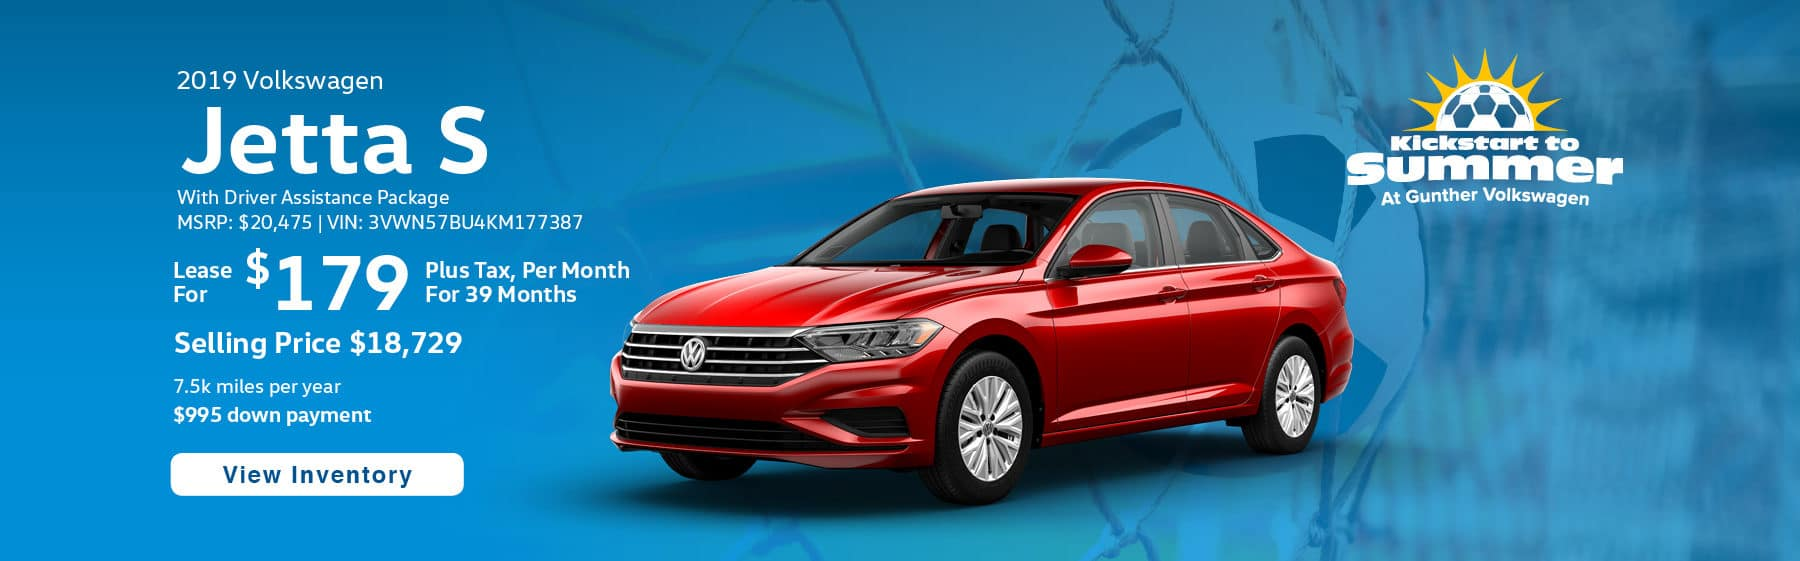 Lease the 2019 Jetta S with Driver Assistance Pkg for $179 per month, plus tax for 39 months.